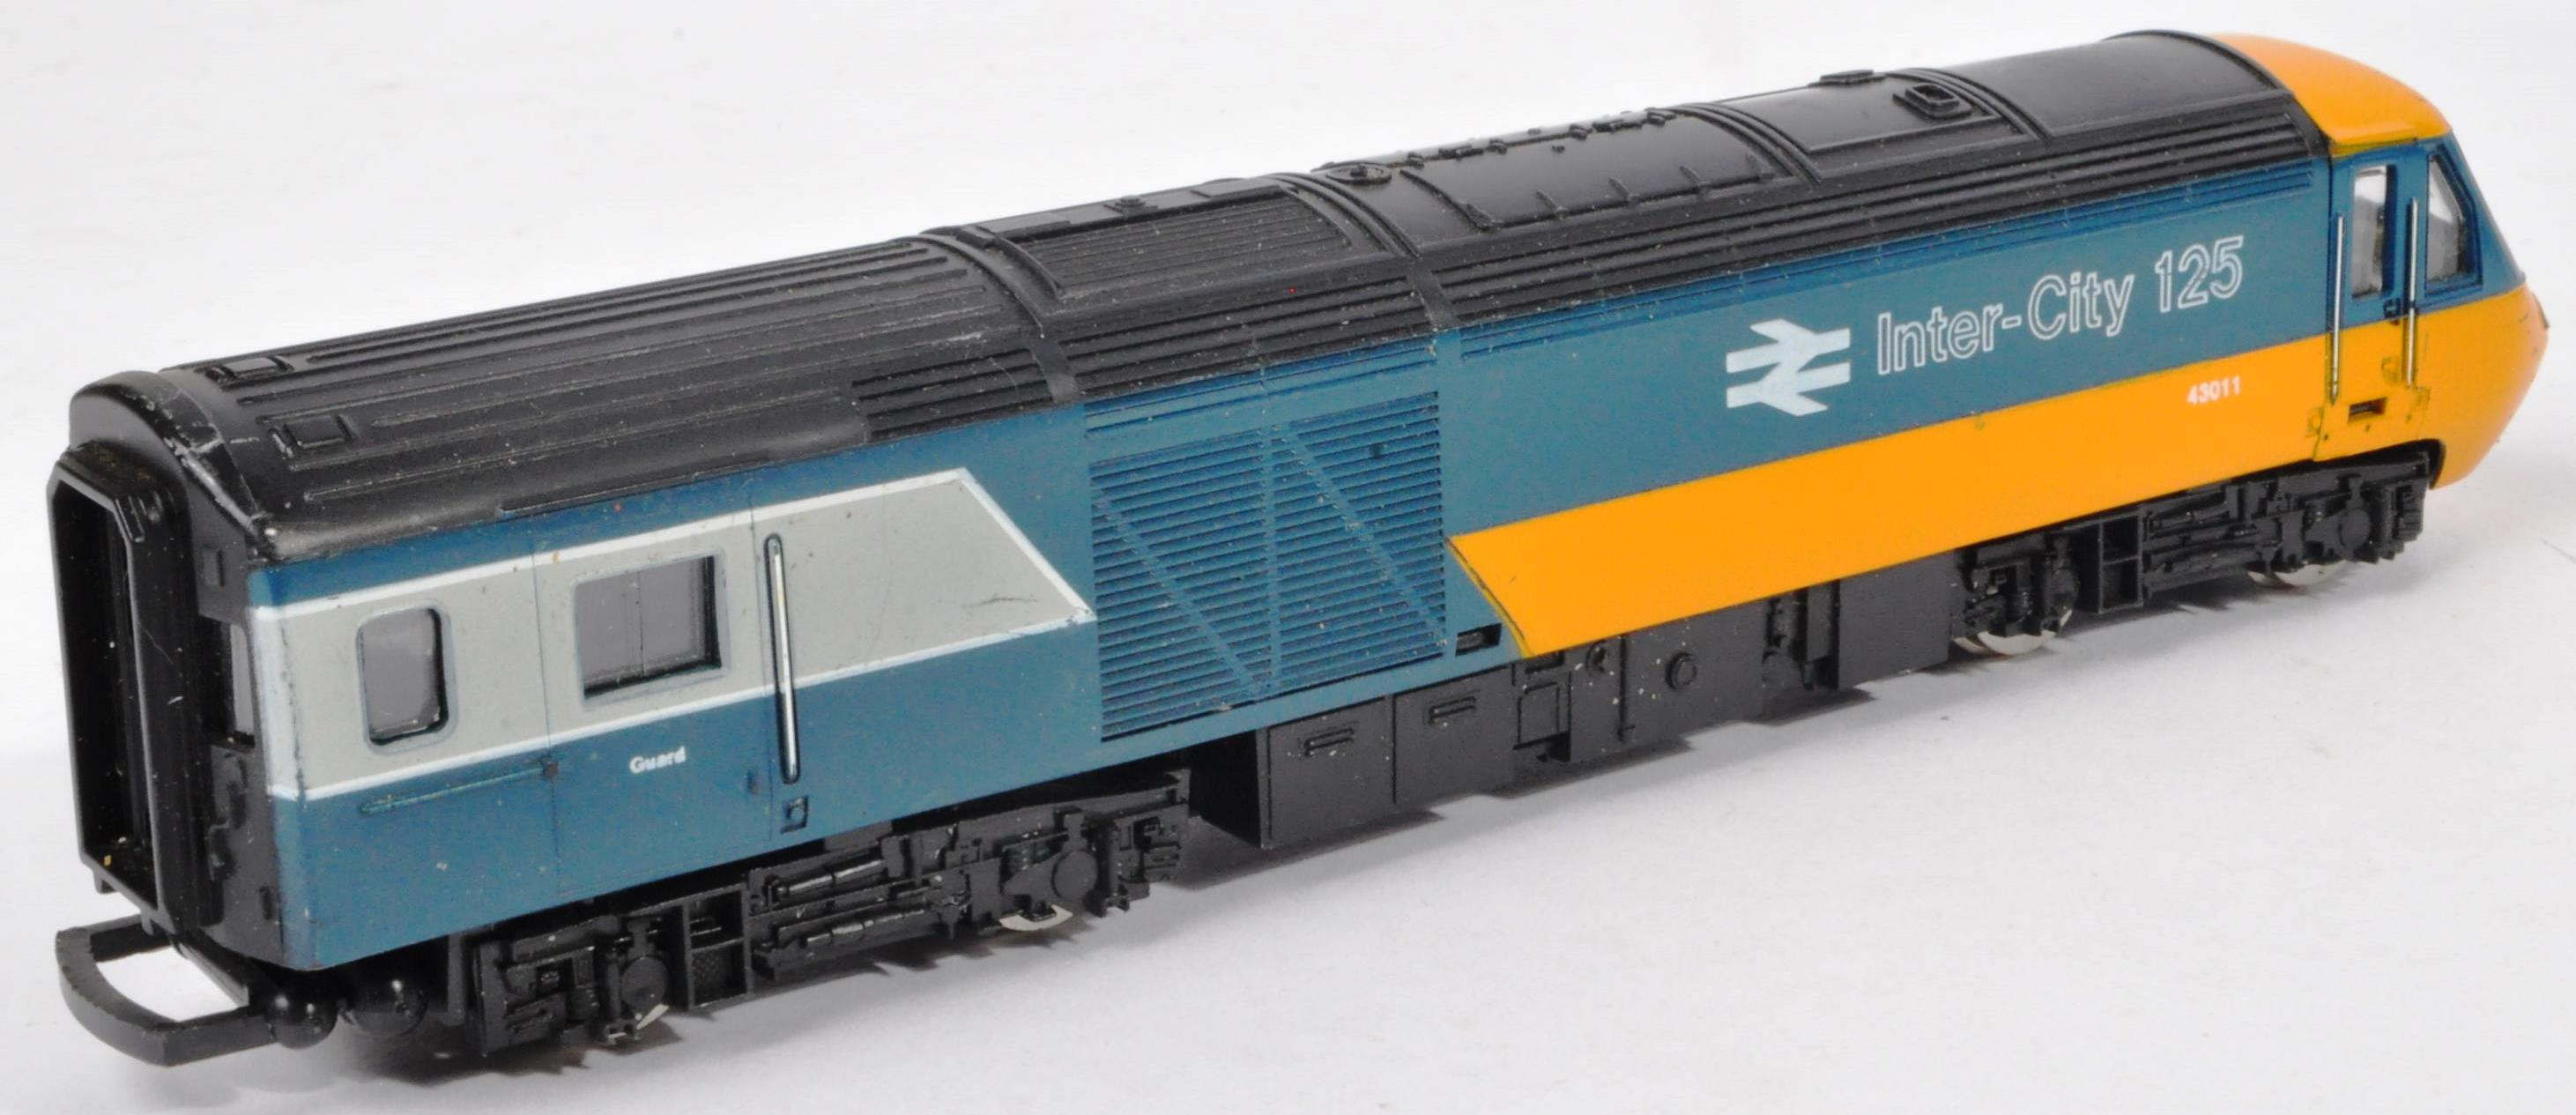 COLLECTION OF ASSORTED DIESEL 00 GAUGE TRAINSET LOCOMOTIVES & CARRIAGES - Image 4 of 10